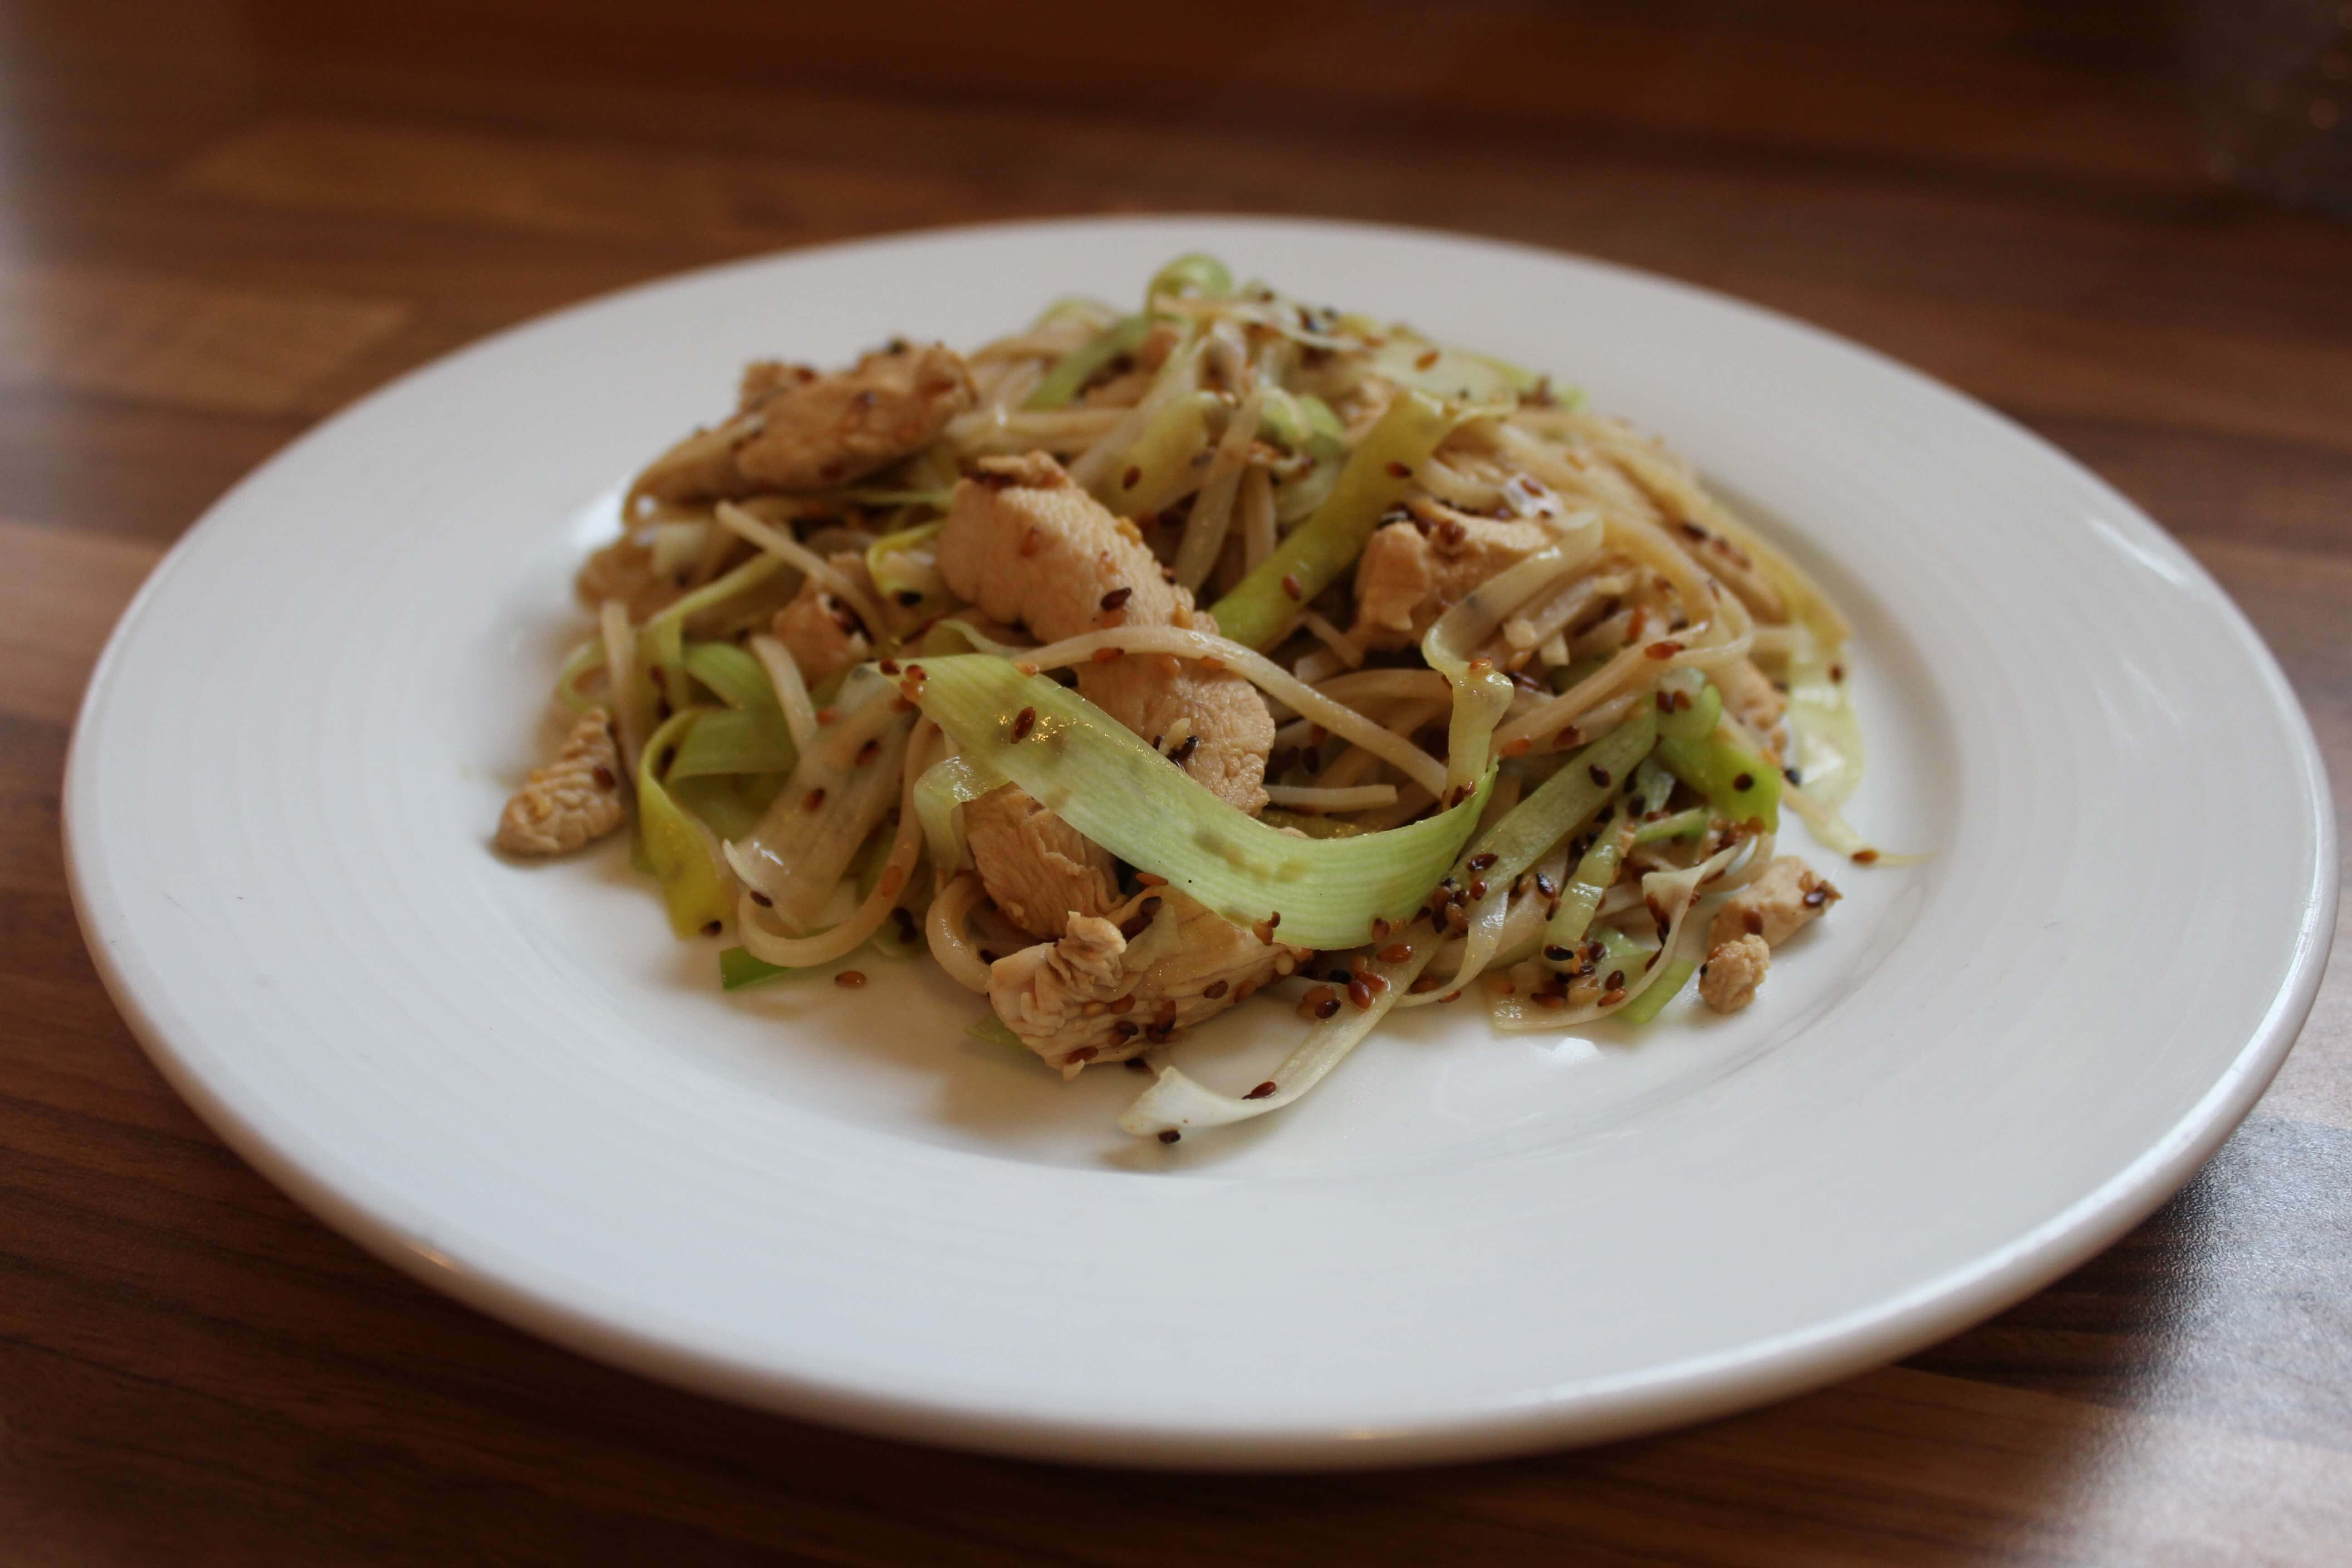 Stir fried sesame chicken, leek and noodles is a really quick and easy to prepare meal. Marinating the chicken first adds to the flavour and prevents it drying out during cooking.